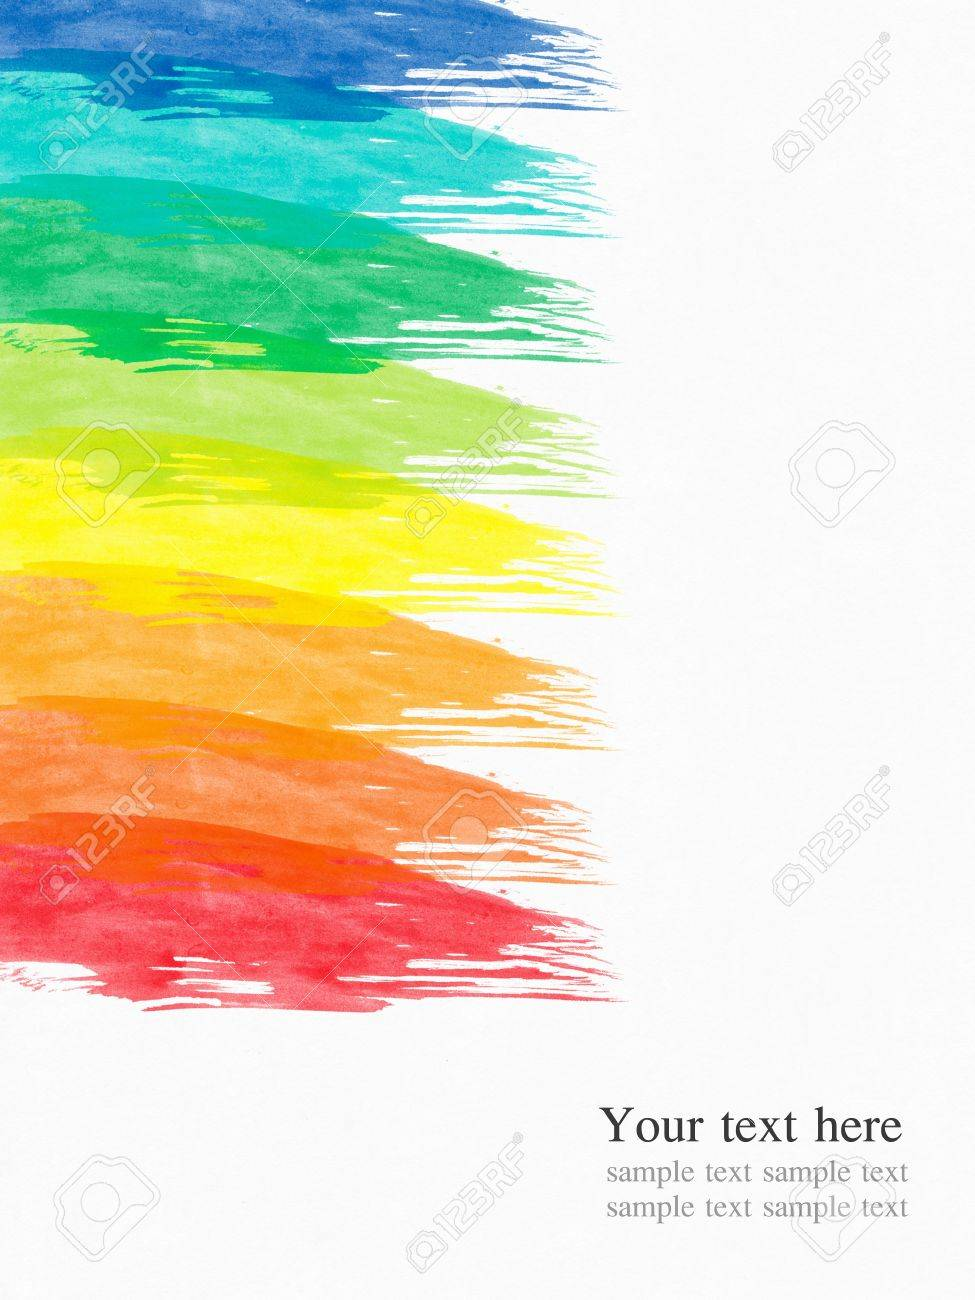 abstract water color paint colorful background Stock Photo - 8993129